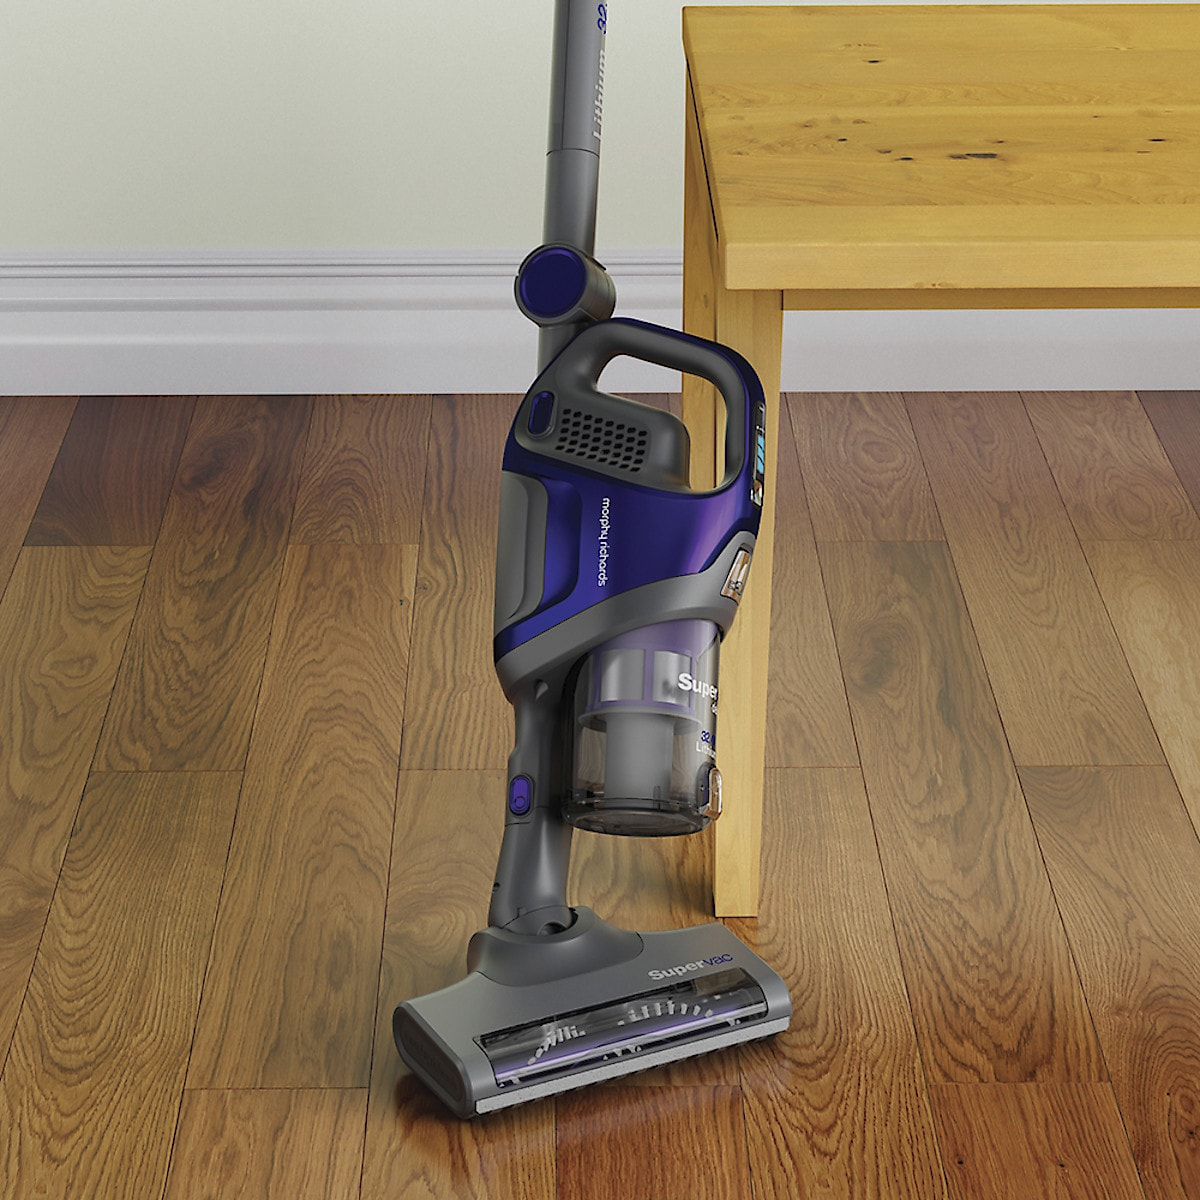 Morphy Richards 734050 Supervac Deluxe 3-in-1 Cordless Vacuum Cleaner